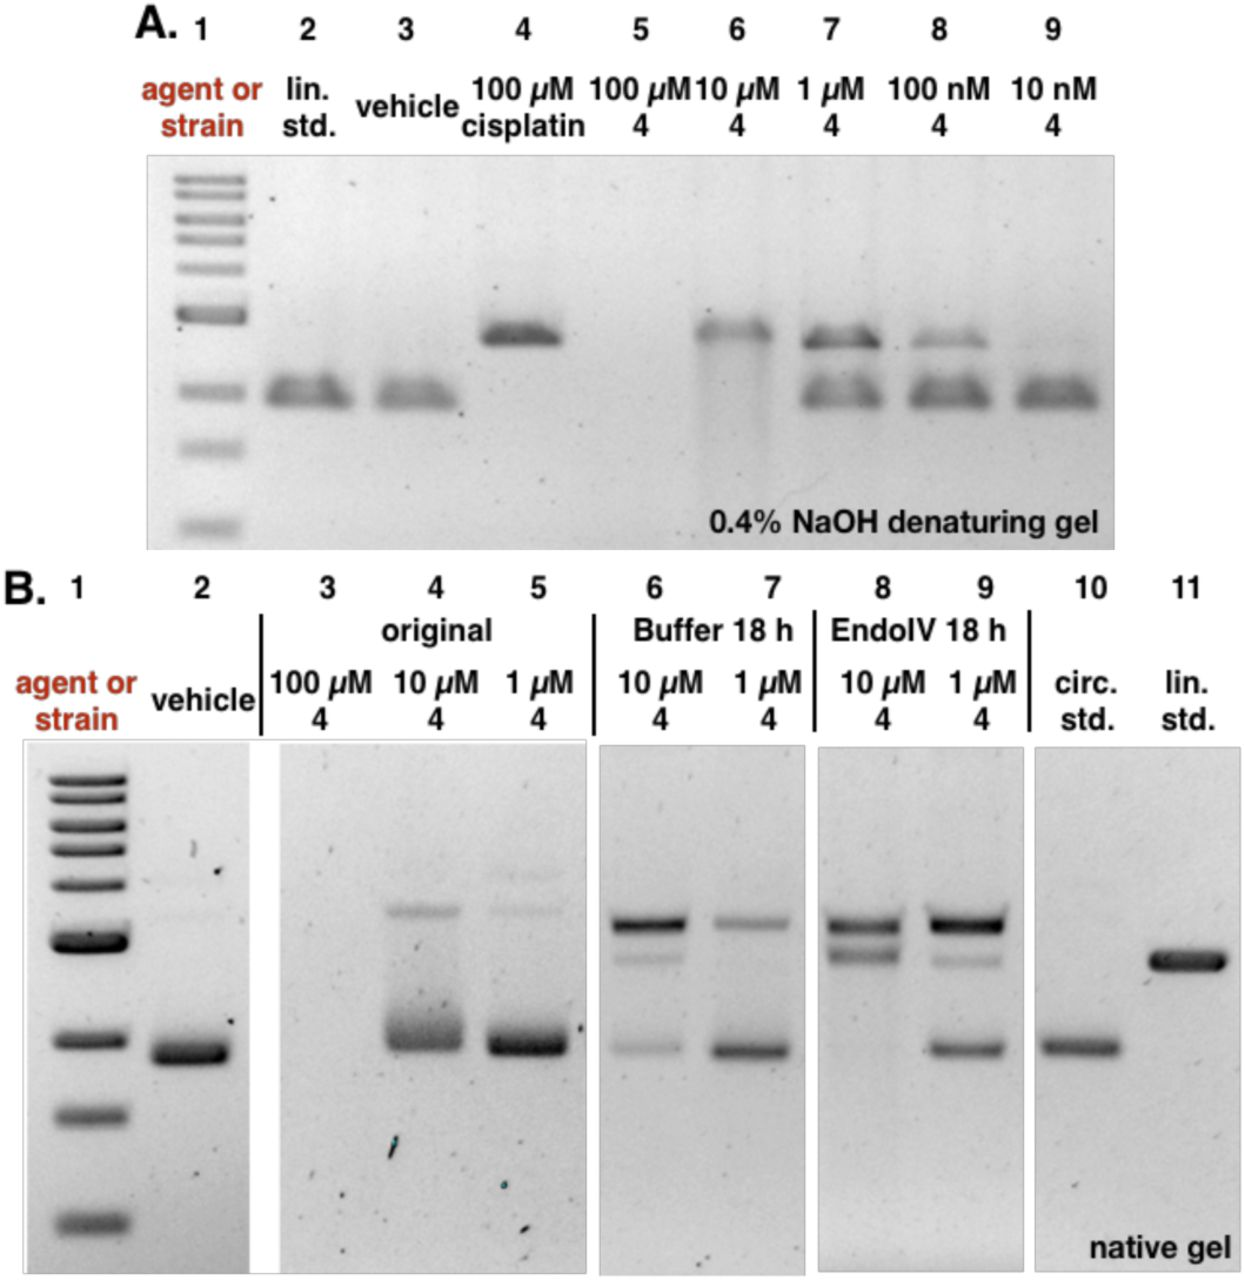 Analysis of induction of AP sites by the colibactin precursor  4. A.  Incubation of plasmid pUC19 DNA exposed to  4  in buffer for 18 h results in minor nicking and cleavage.  B.  Addition of EndoIV increases the amount of nicked and cleaved plasmid. Conditions: A. 5% DMSO was used as vehicle (negative control), and 100 µM cisplatin was used as positive control. DNA ladder (Lane #1); linearized pUC19 DNA standard (Lane #2); 5% DMSO (Lane #3); 100 µM cisplatin (Lane #4); 100 µM  4  (Lane #5); 10 µM  4  (Lane #6); 1 µM  4  (Lane #7); 100 nM  4  (Lane #8); 10 nM  4  (Lane #9). Conditions (Lane #3): linearized pUC19 DNA (15.4 µM in base pairs), 5% DMSO (vehicle), 10 mM citric buffer, pH 5.0, 4 h, 37 °C. Conditions (Lane #4): linearized pUC19 DNA (15.4 µM in base pairs), 5% DMSO (vehicle), 100 µM cisplatin, 10 mM citric buffer, pH 5.0, 4 h, 37 °C. Conditions (Lanes #5–#9): circular pUC19 DNA (15.4 µM in base pairs),  4  (100 µM–10 nM), 5% DMSO, 10 mM citric buffer, pH 5.0, 4 h, 37 °C. The DNA was analyzed by 0.4% NaOH denaturing agarose gel electrophoresis (90 V, 1.5 h). B. 5% DMSO was used as vehicle. DNA ladder (Lane #1); 5% DMSO (Lane #2); 100 µM  4  (Lane #3); 10 µM  4  (Lane #4); 1 µM  4  (Lane #5); post buffer-reacted after 10 µM  4  (Lane #6); post buffer-reacted after 1 µM  4  (Lane #7); post EndoIV-reacted after 10 µM  4  (Lane #8); post EndoIV-reacted after 1 µM  4  (Lane #9); circular pUC19 plasmid standard (Lane #10); linearized pUC19 plasmid standard (Lane #11). Conditions (Lane #2): circular pUC19 DNA (15.4 µM in base pairs), 5% DMSO (vehicle), 10 mM citric buffer, pH 5.0, 4 h, 37 °C. Conditions (Lanes #3–#5): circular pUC19 DNA (15.4 µM in base pairs),  4  (100 µM–1 µM), 5% DMSO, 10 mM citric buffer, pH 5.0, 3 h, 37 °C. Conditions (Lanes #6–#7):  4  (10 µM–1 µM)-treated circular pUC19 DNA (3.9 µM in base pairs), NEBuffer 3.1® (New England Biolabs®), pH 7.9, at 37 °C for 18 h. Conditions (Lanes #8–#9):  4  (10 µM–1 µM)-treated circular pUC19 DNA (3.9 µM in 